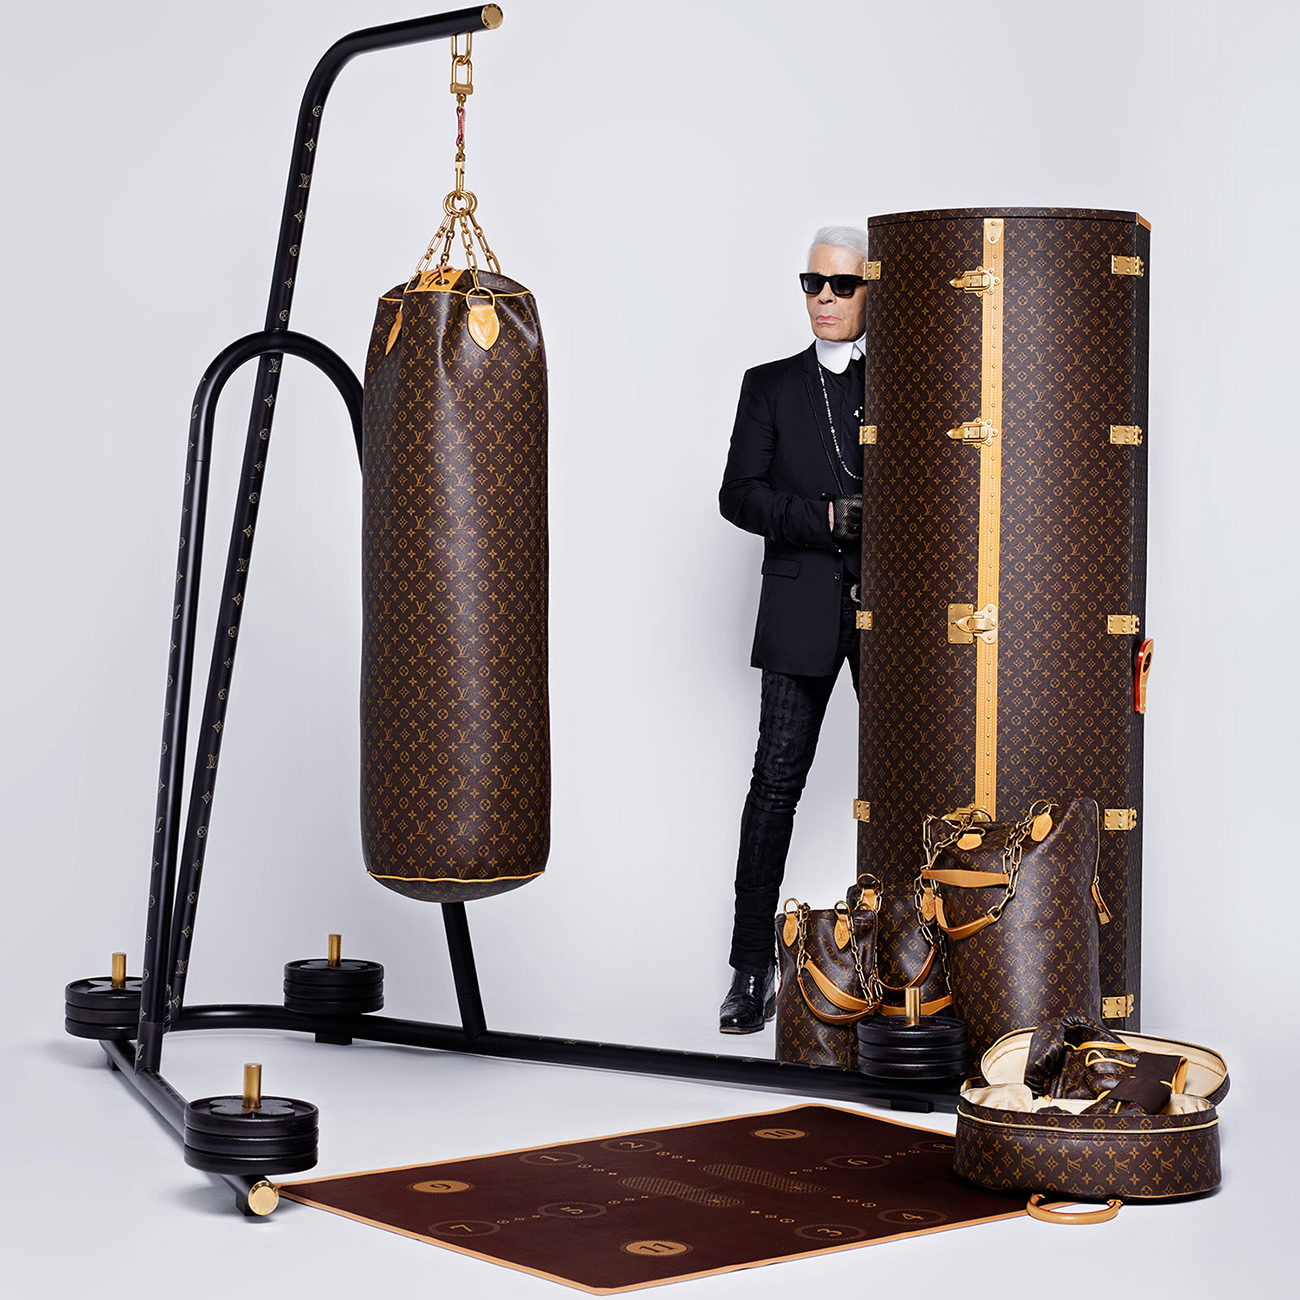 louis-vuitton-by-karl-lagerfeld-1